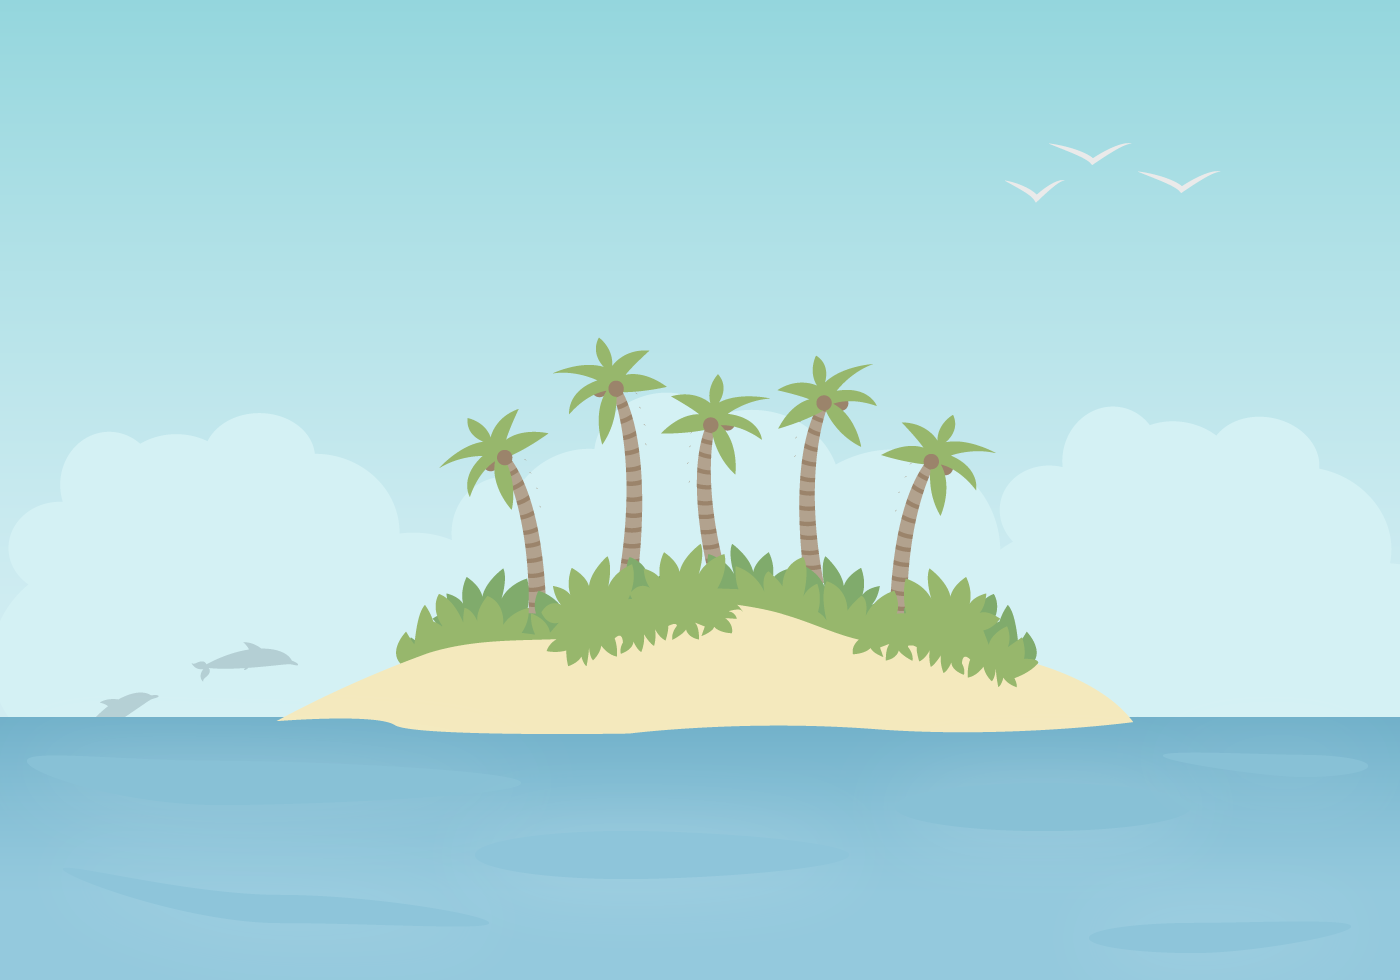 ... Island Vector - Download Free Vector Art, Stock Graphics & Images